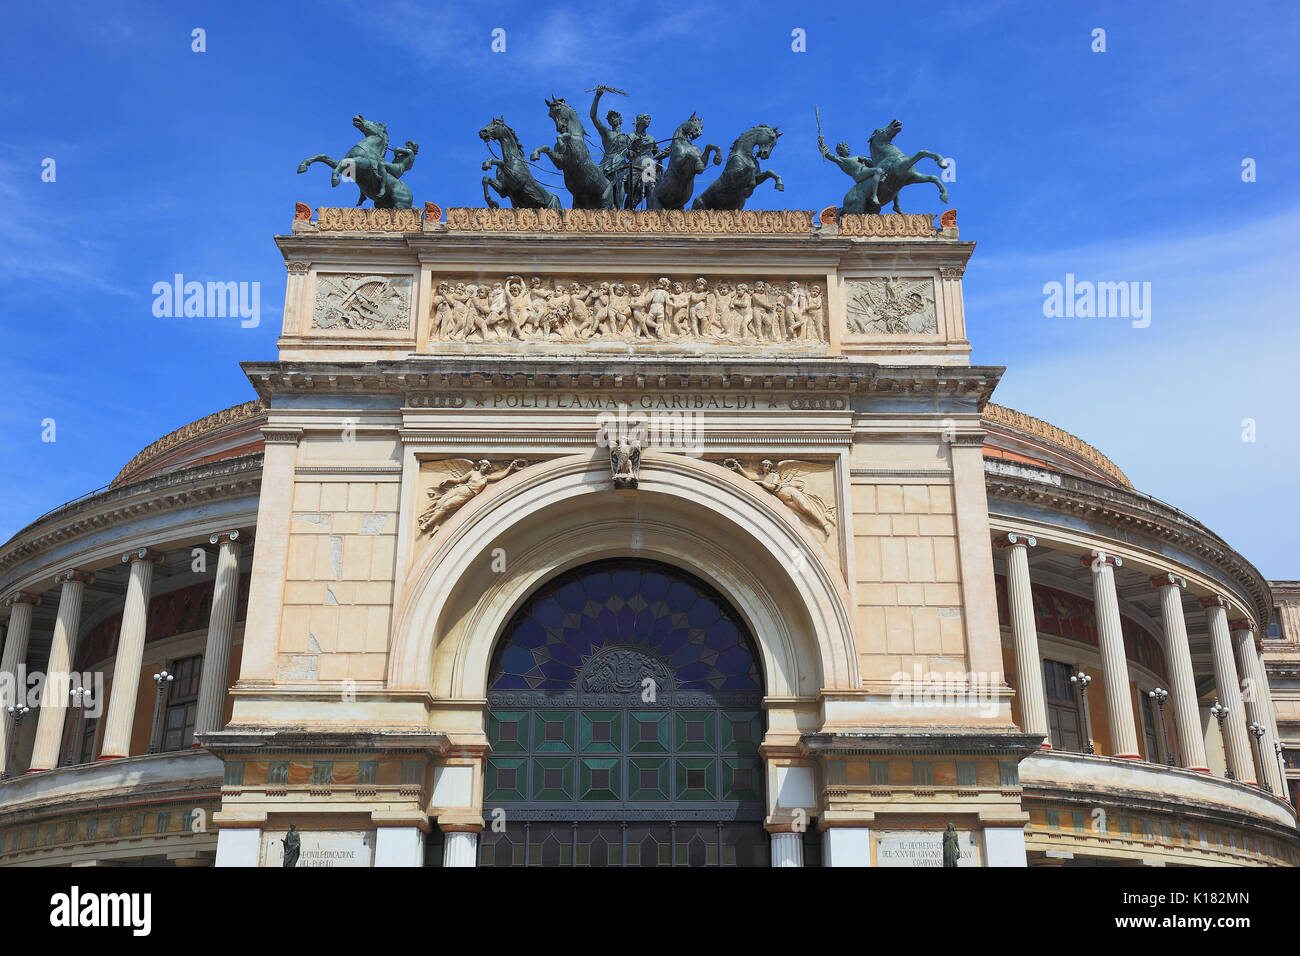 Sicily, in the old town of Palermo, the Teatro Politeama Garibaldi is a theater building in the style of neoclassicism - Stock Image